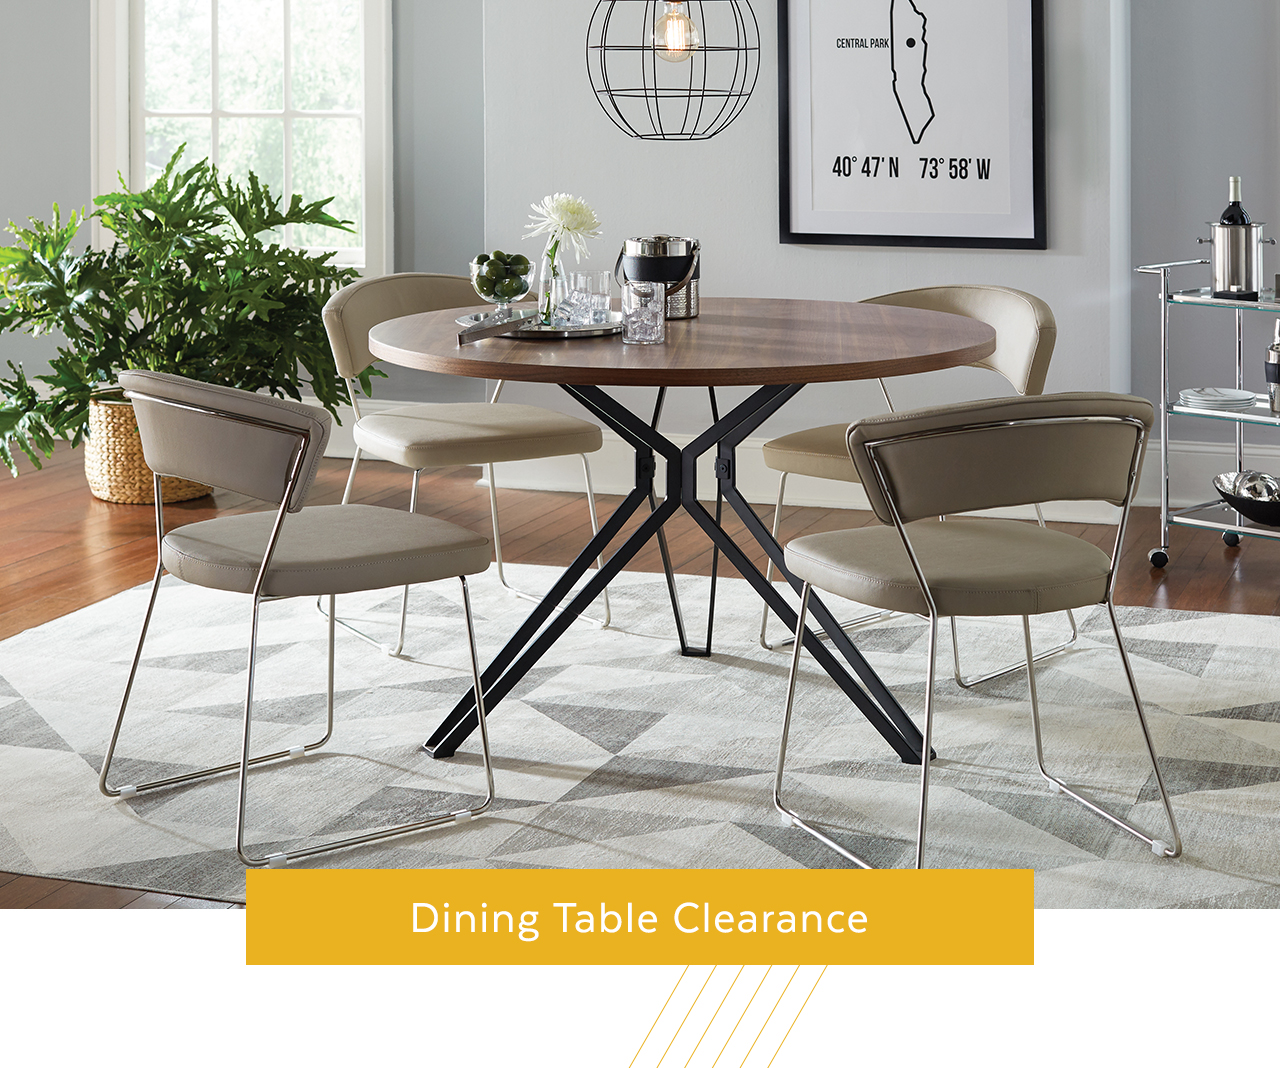 Dining Table Clearance